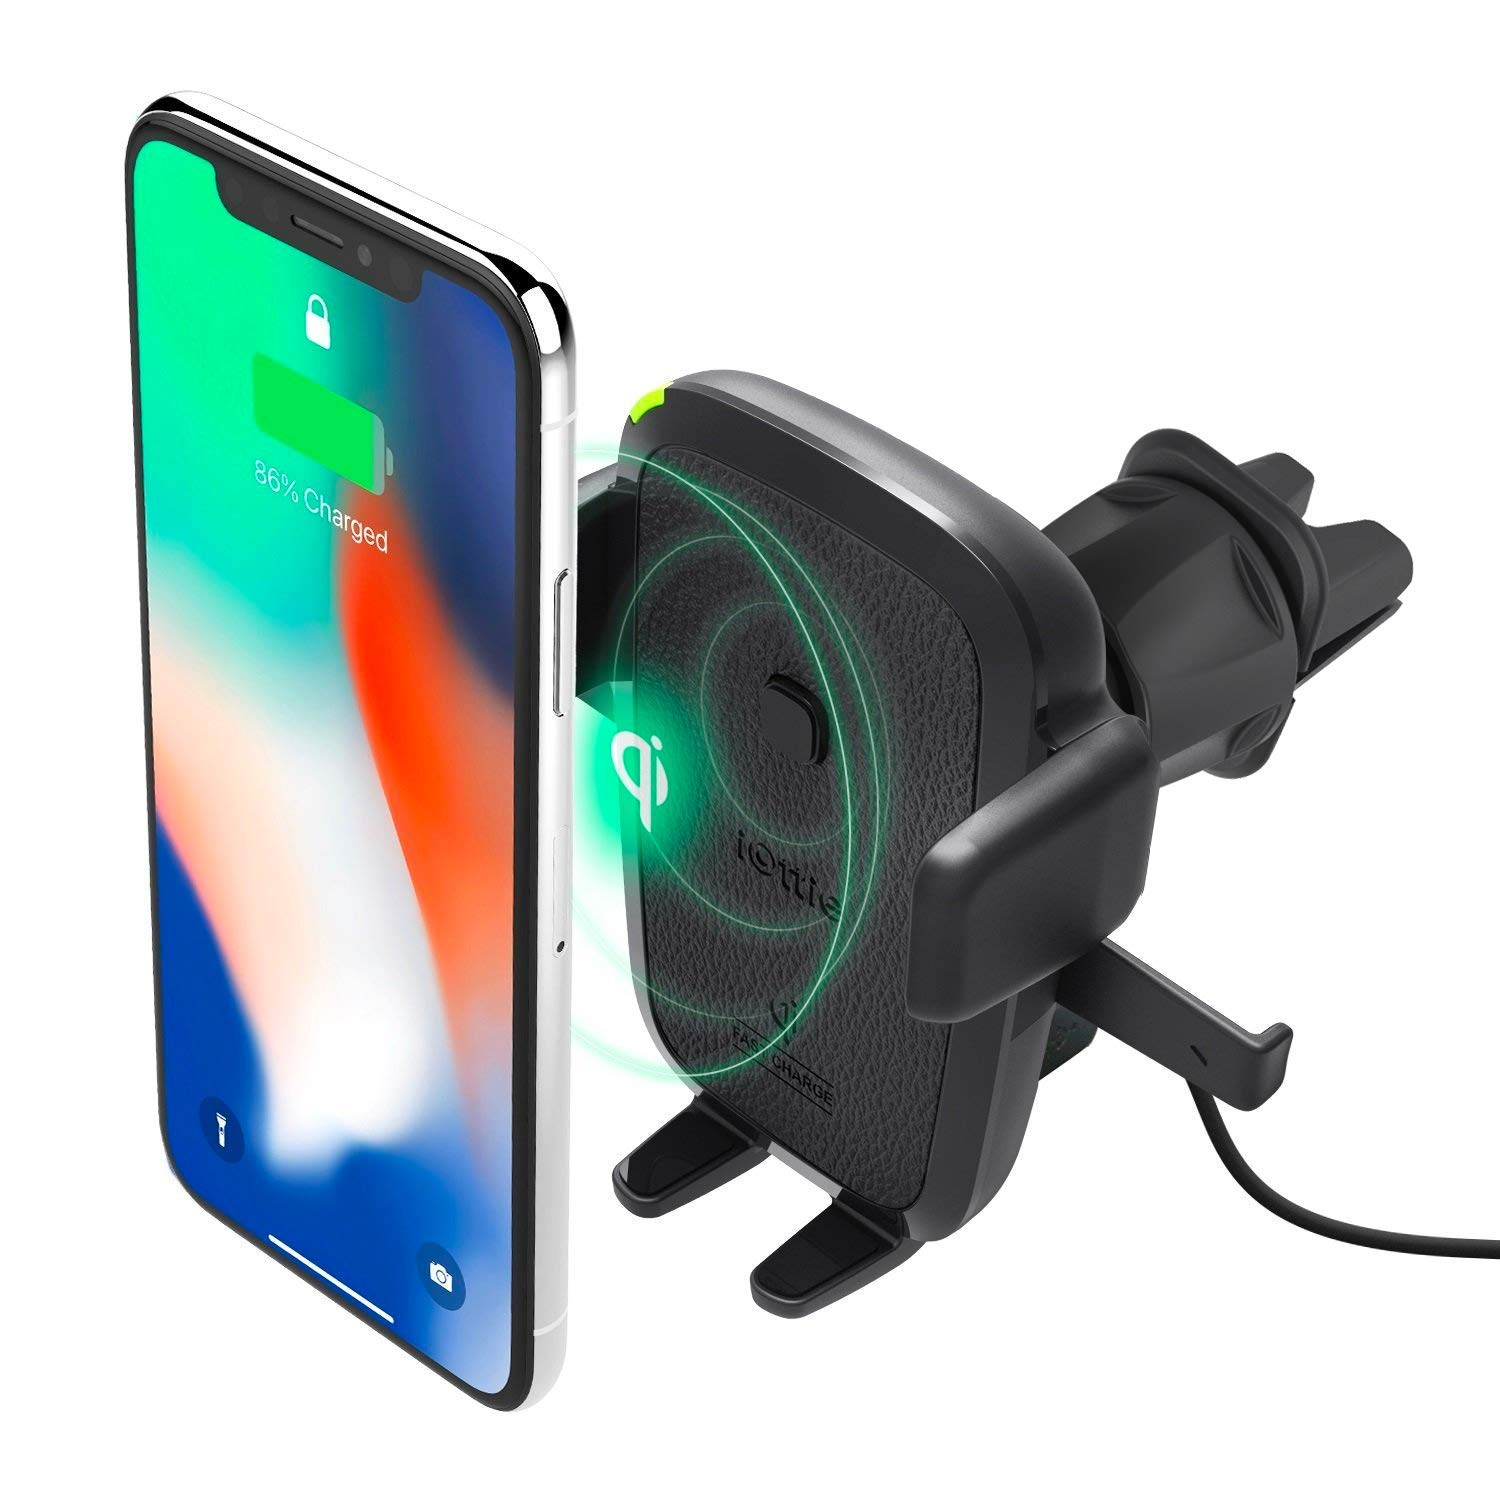 iOttie Easy One Touch Qi Wireless Charger Vent Mount || Fast Charge for Samsung Galaxy S10 E S9 S8 Plus Edge, Note 9 & Standard Charge for iPhone XS Max XS 8 Plus & Qi Devices | + Dual Charger by iOttie